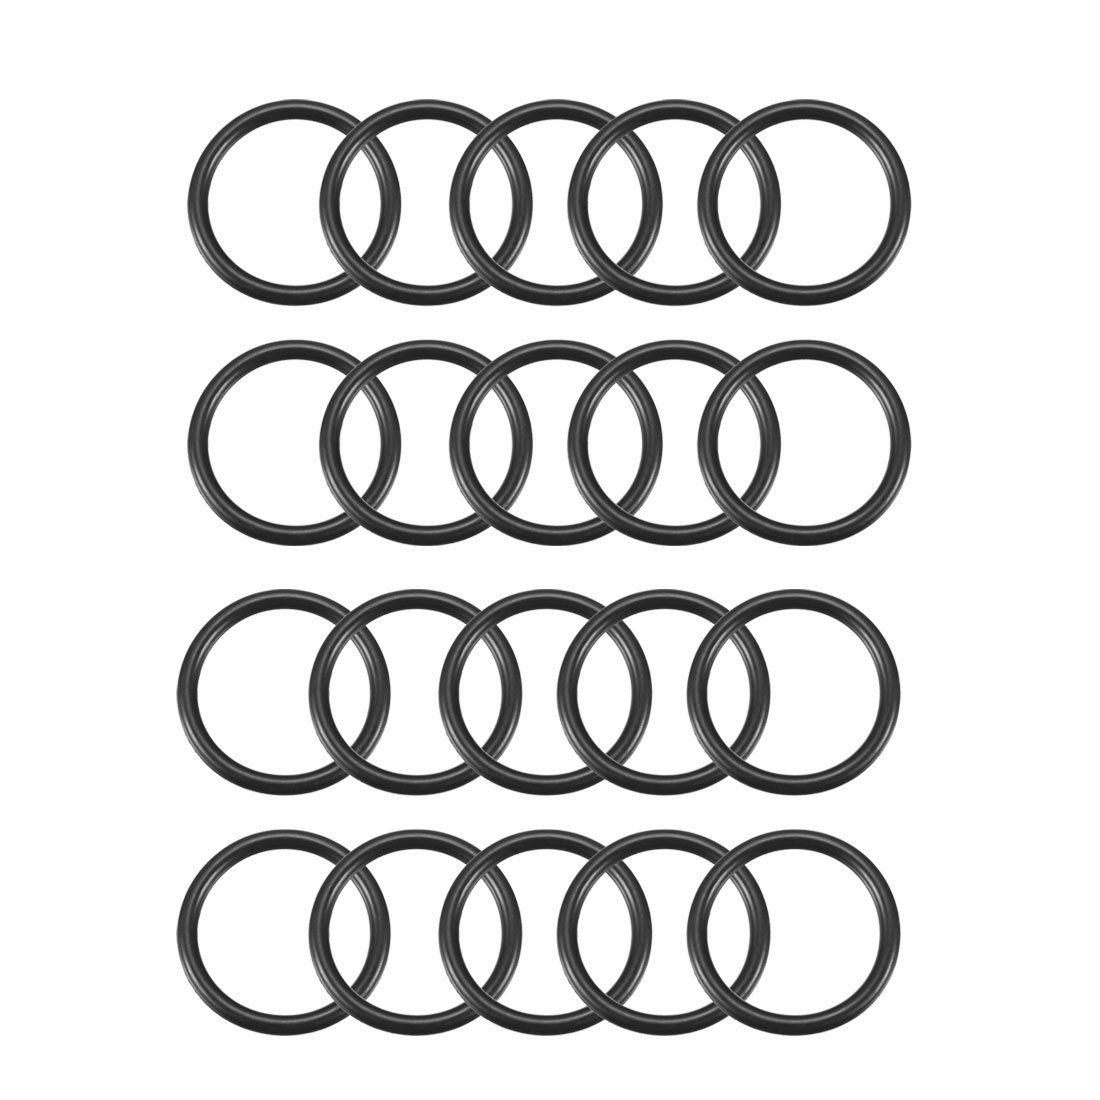 20 Pcs Industrial Flexible Rubber O Ring Seal Gasket 29mm x 36mm x 3.5mm